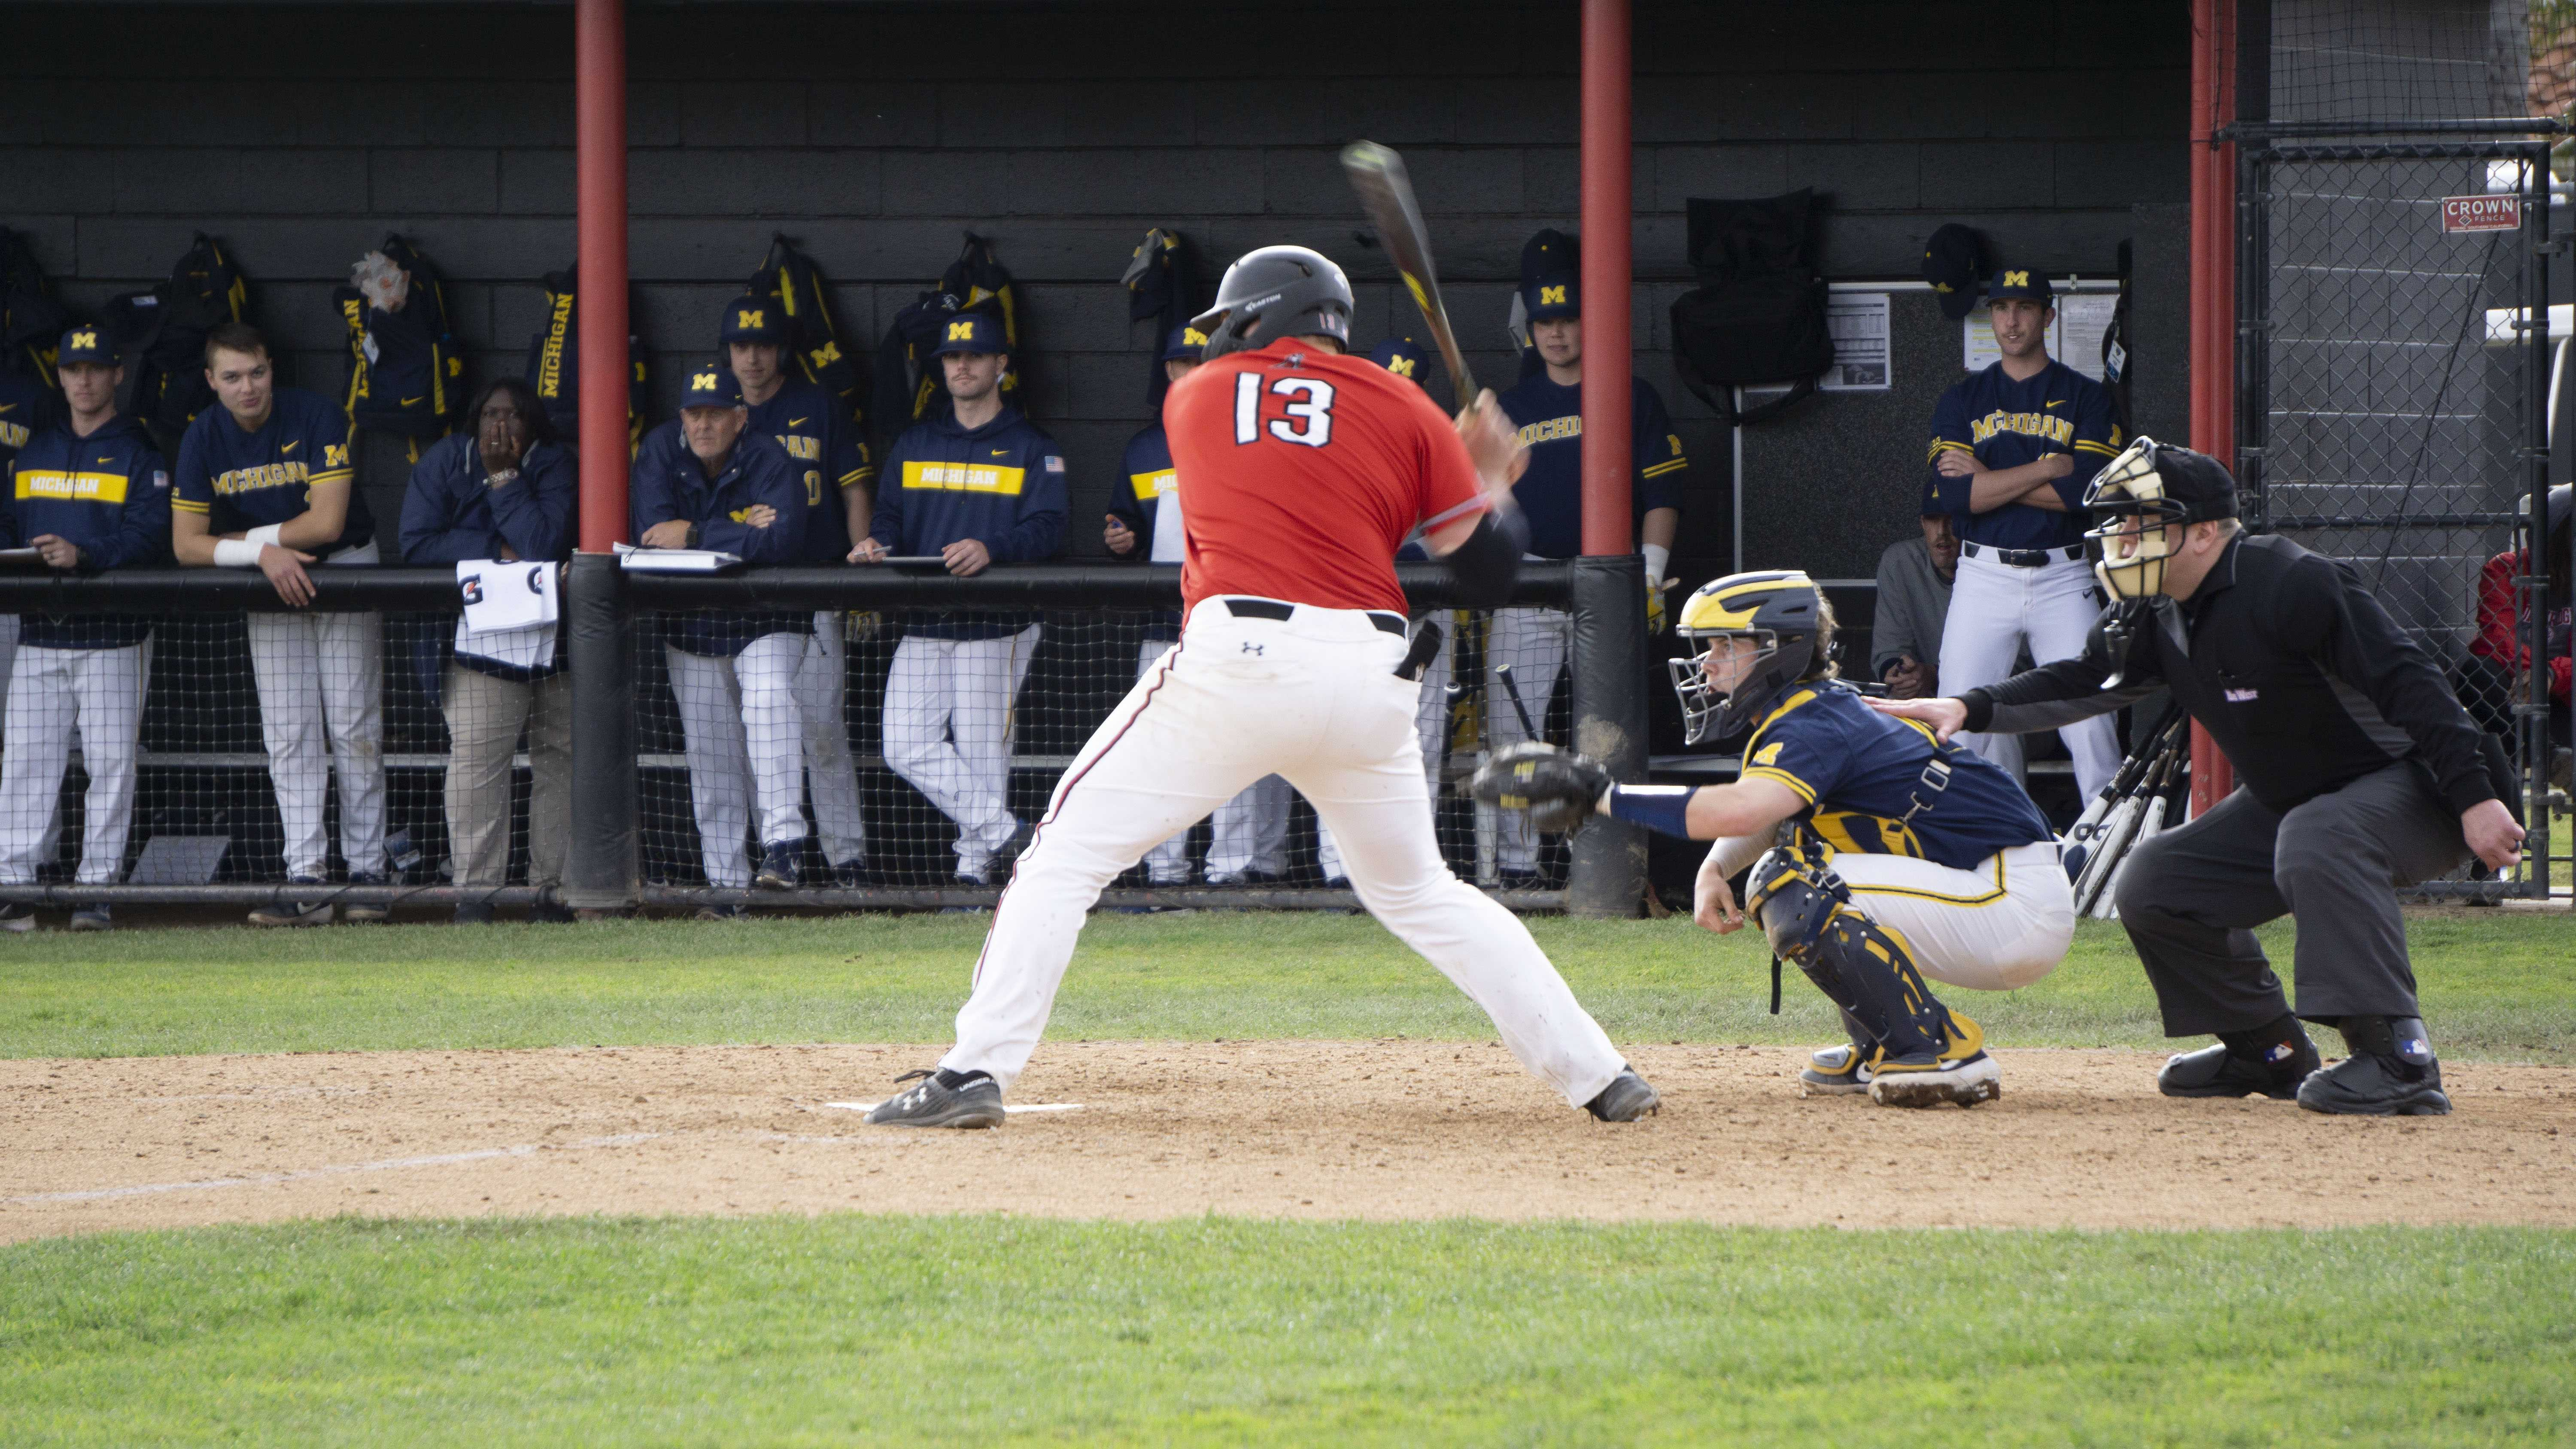 Senior Jayson Newman hits a double to center field in the bottom of the eighth inning Sunday afternoon against No. 17 Michigan. Newman hit .500 in the series with a home run, a double and three RBIs as the Matadors lost two of three to the Wolverines. Photo credit: Jairo Alvarado